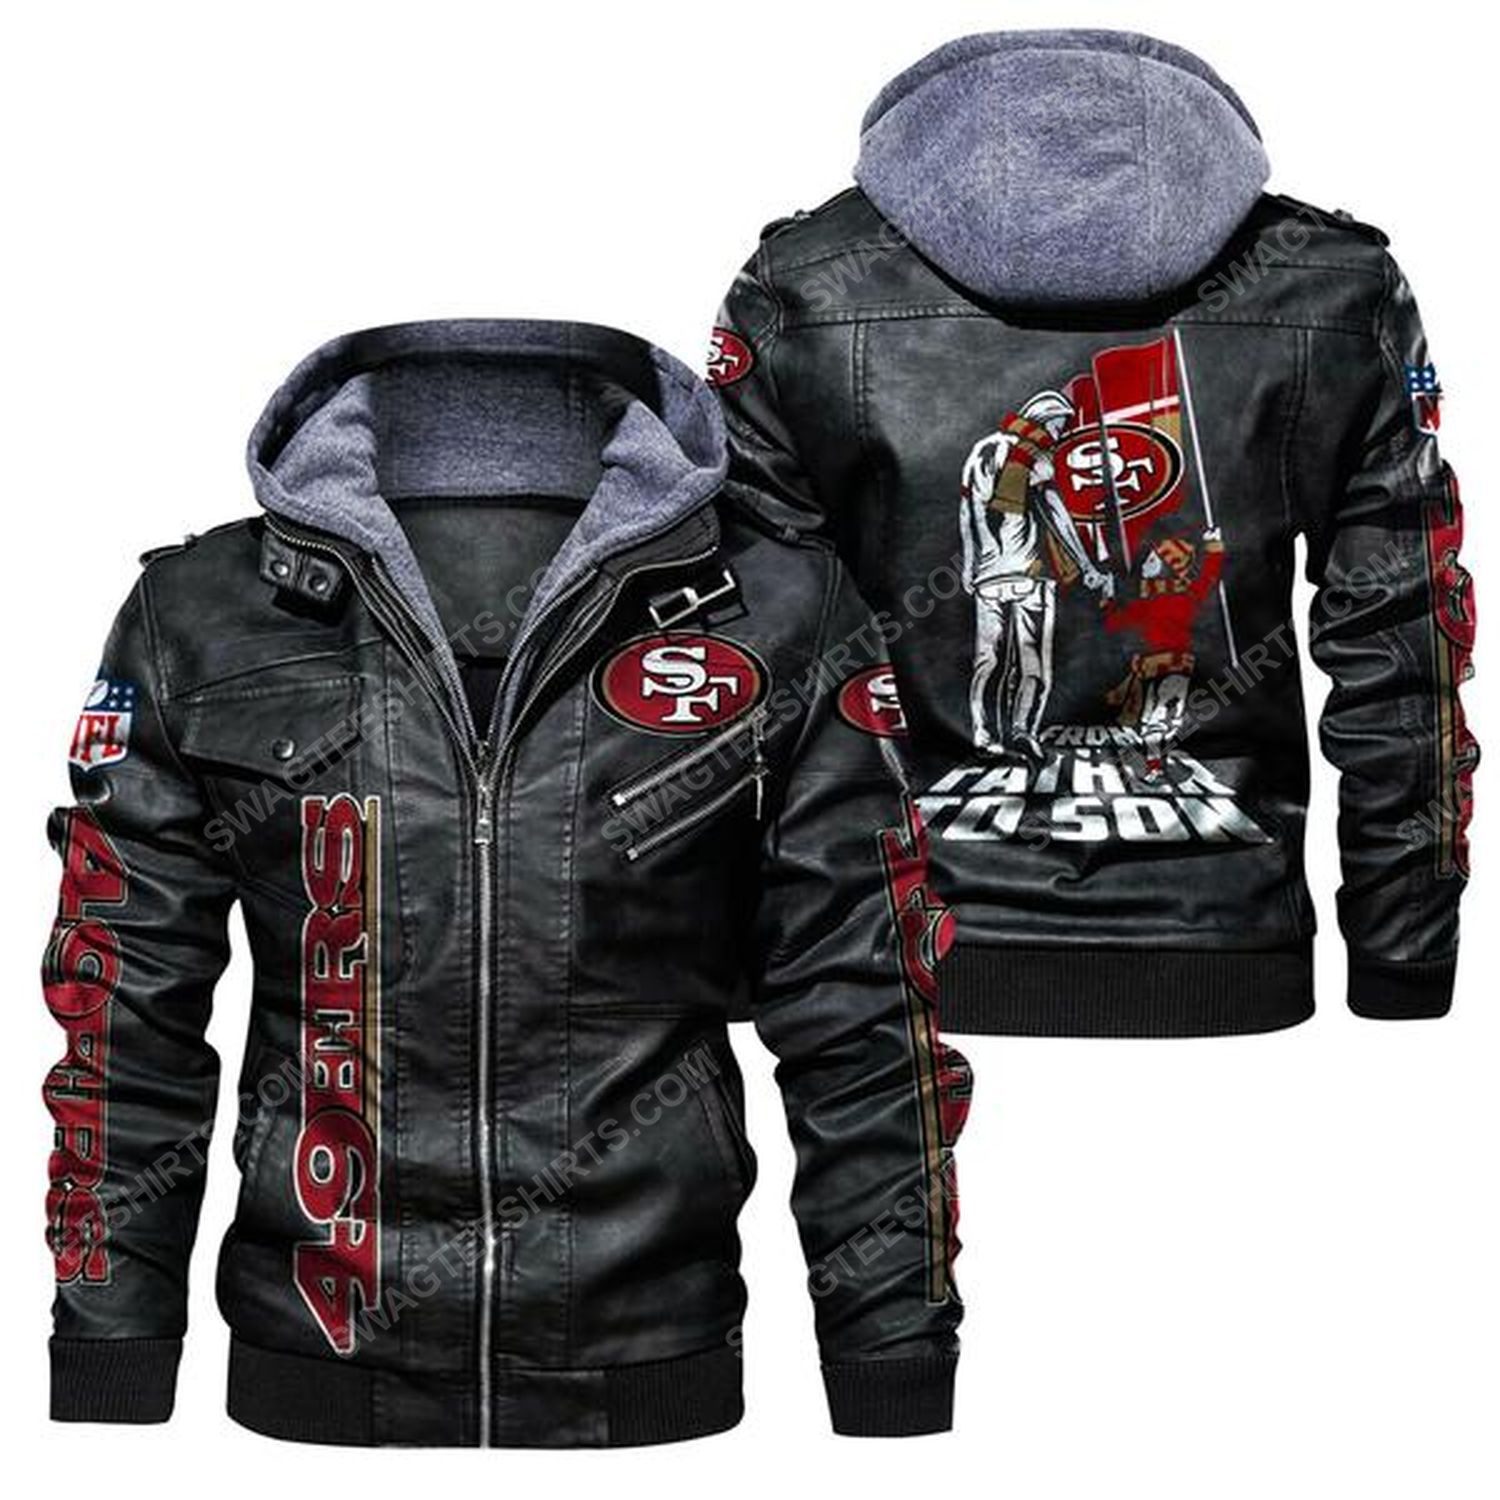 National football league san francisco 49ers from father to son leather jacket - black